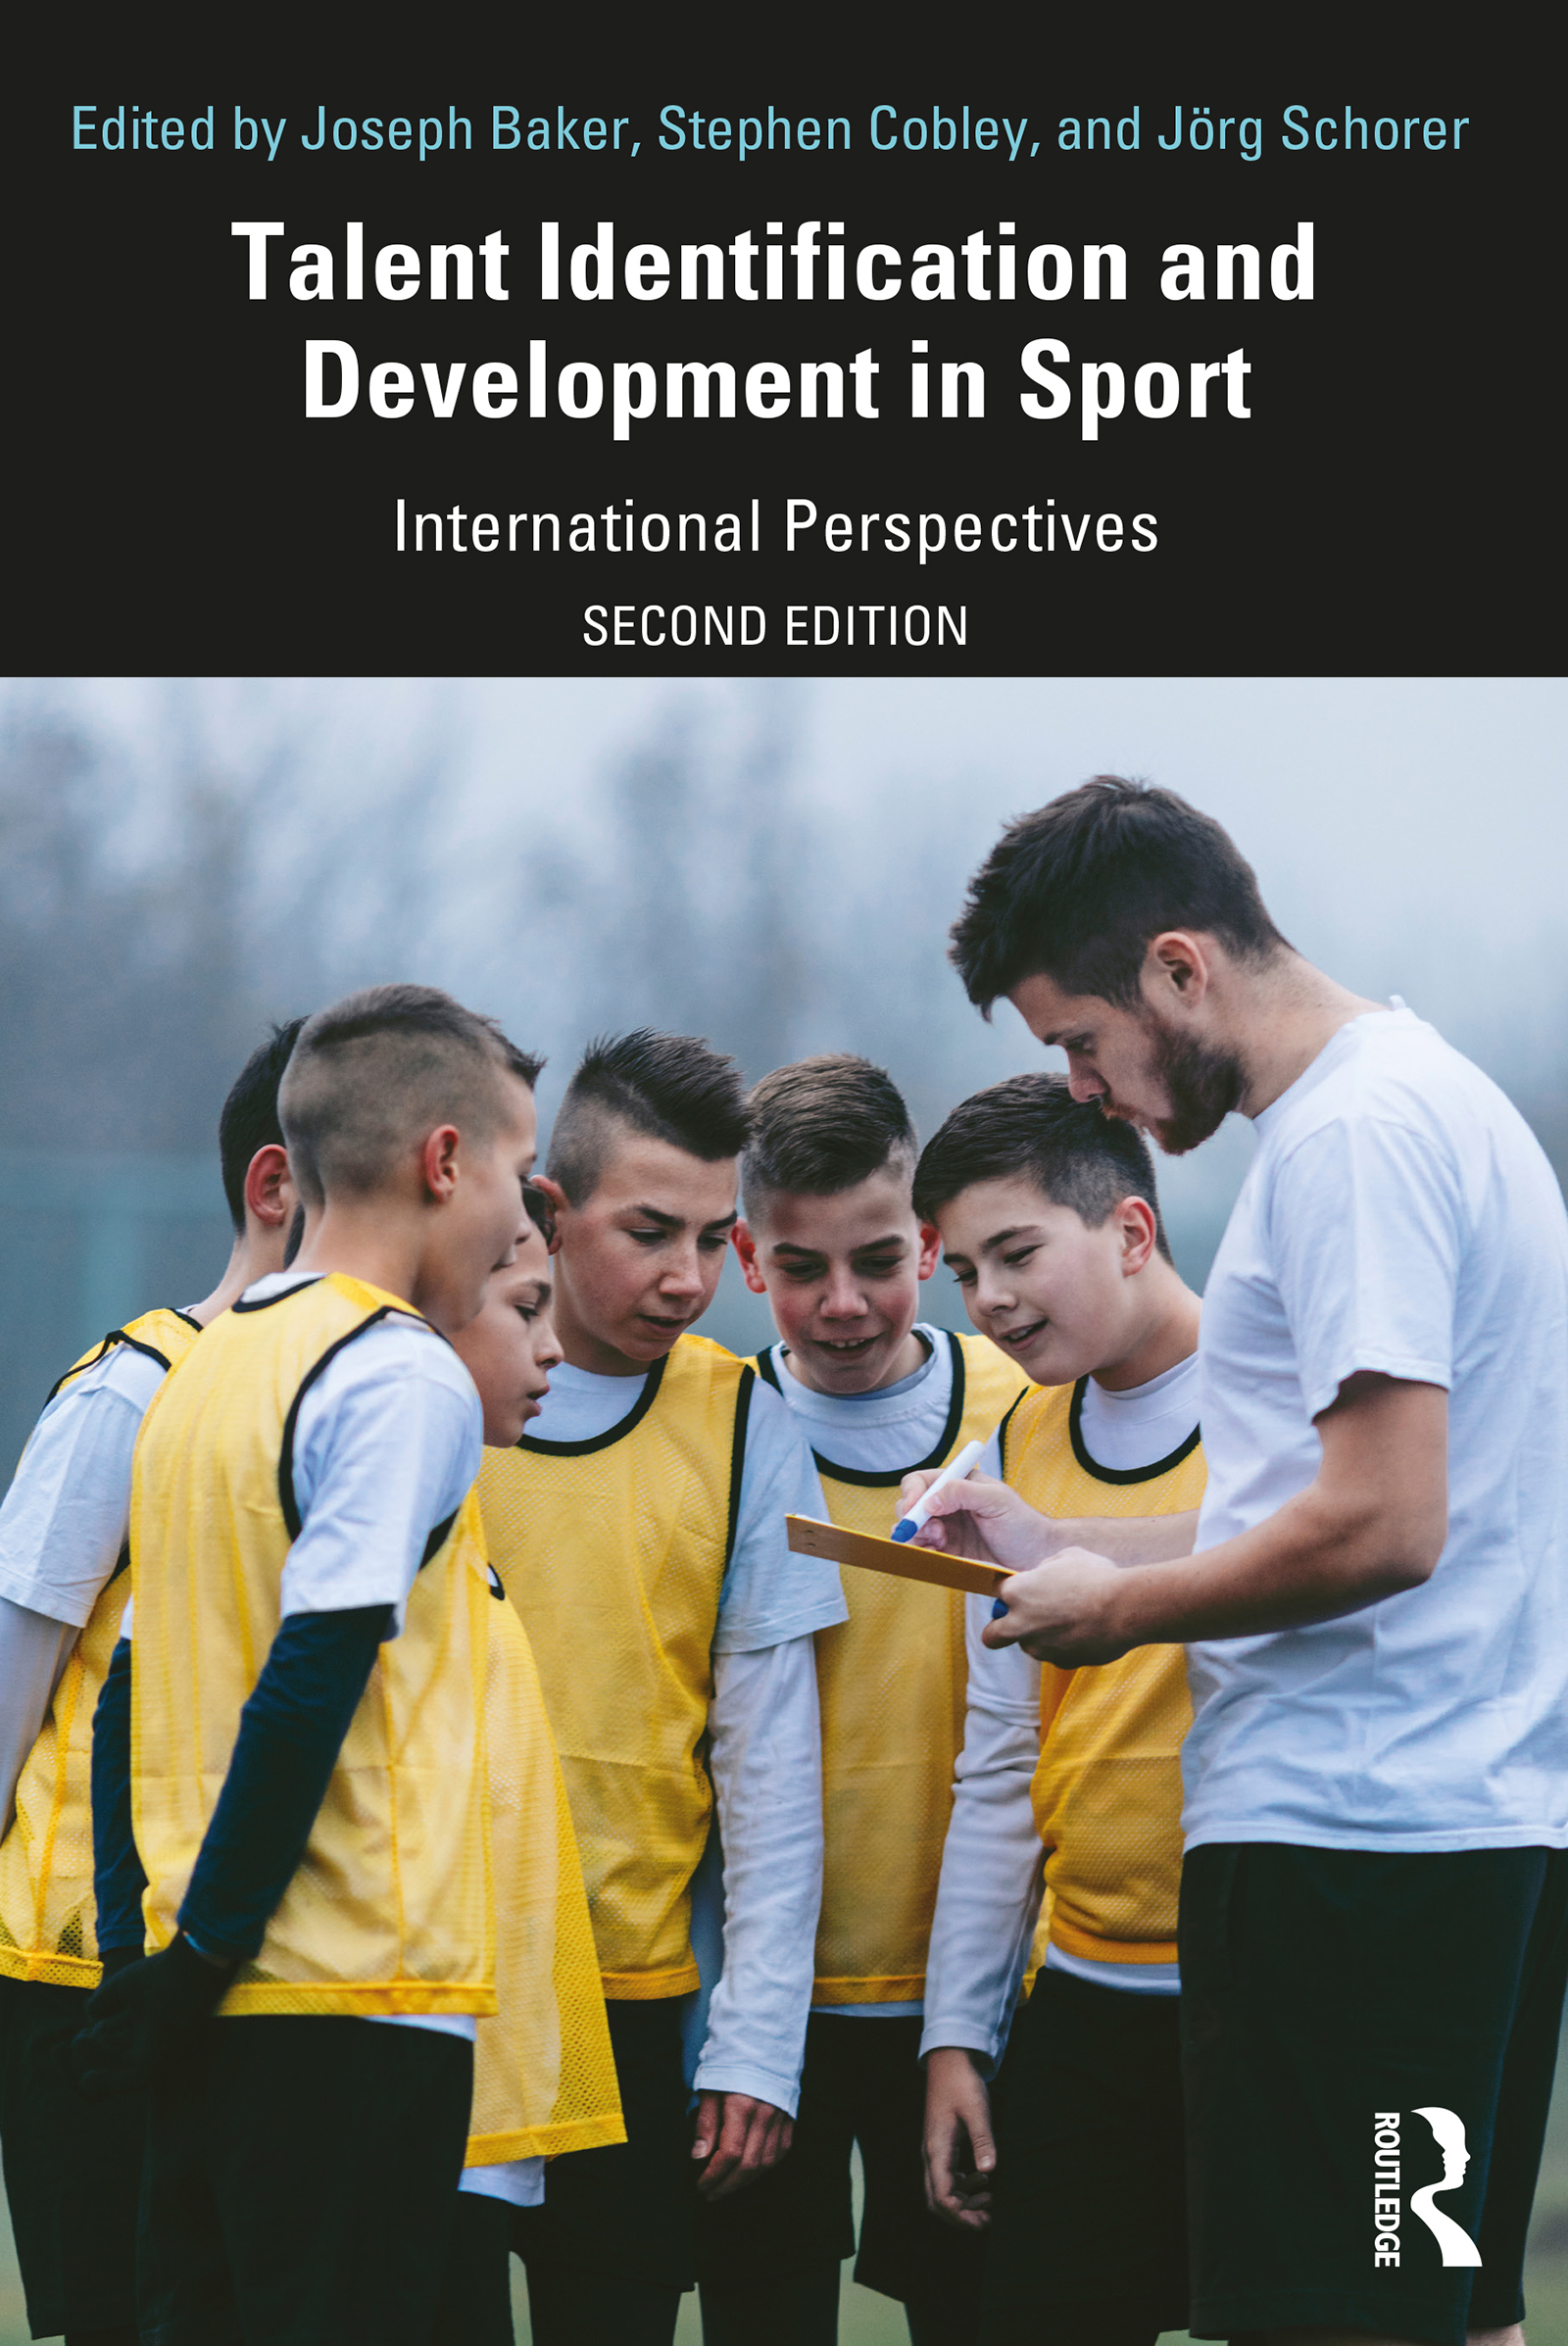 The Role of Skill Acquisition Specialists in Talent Development